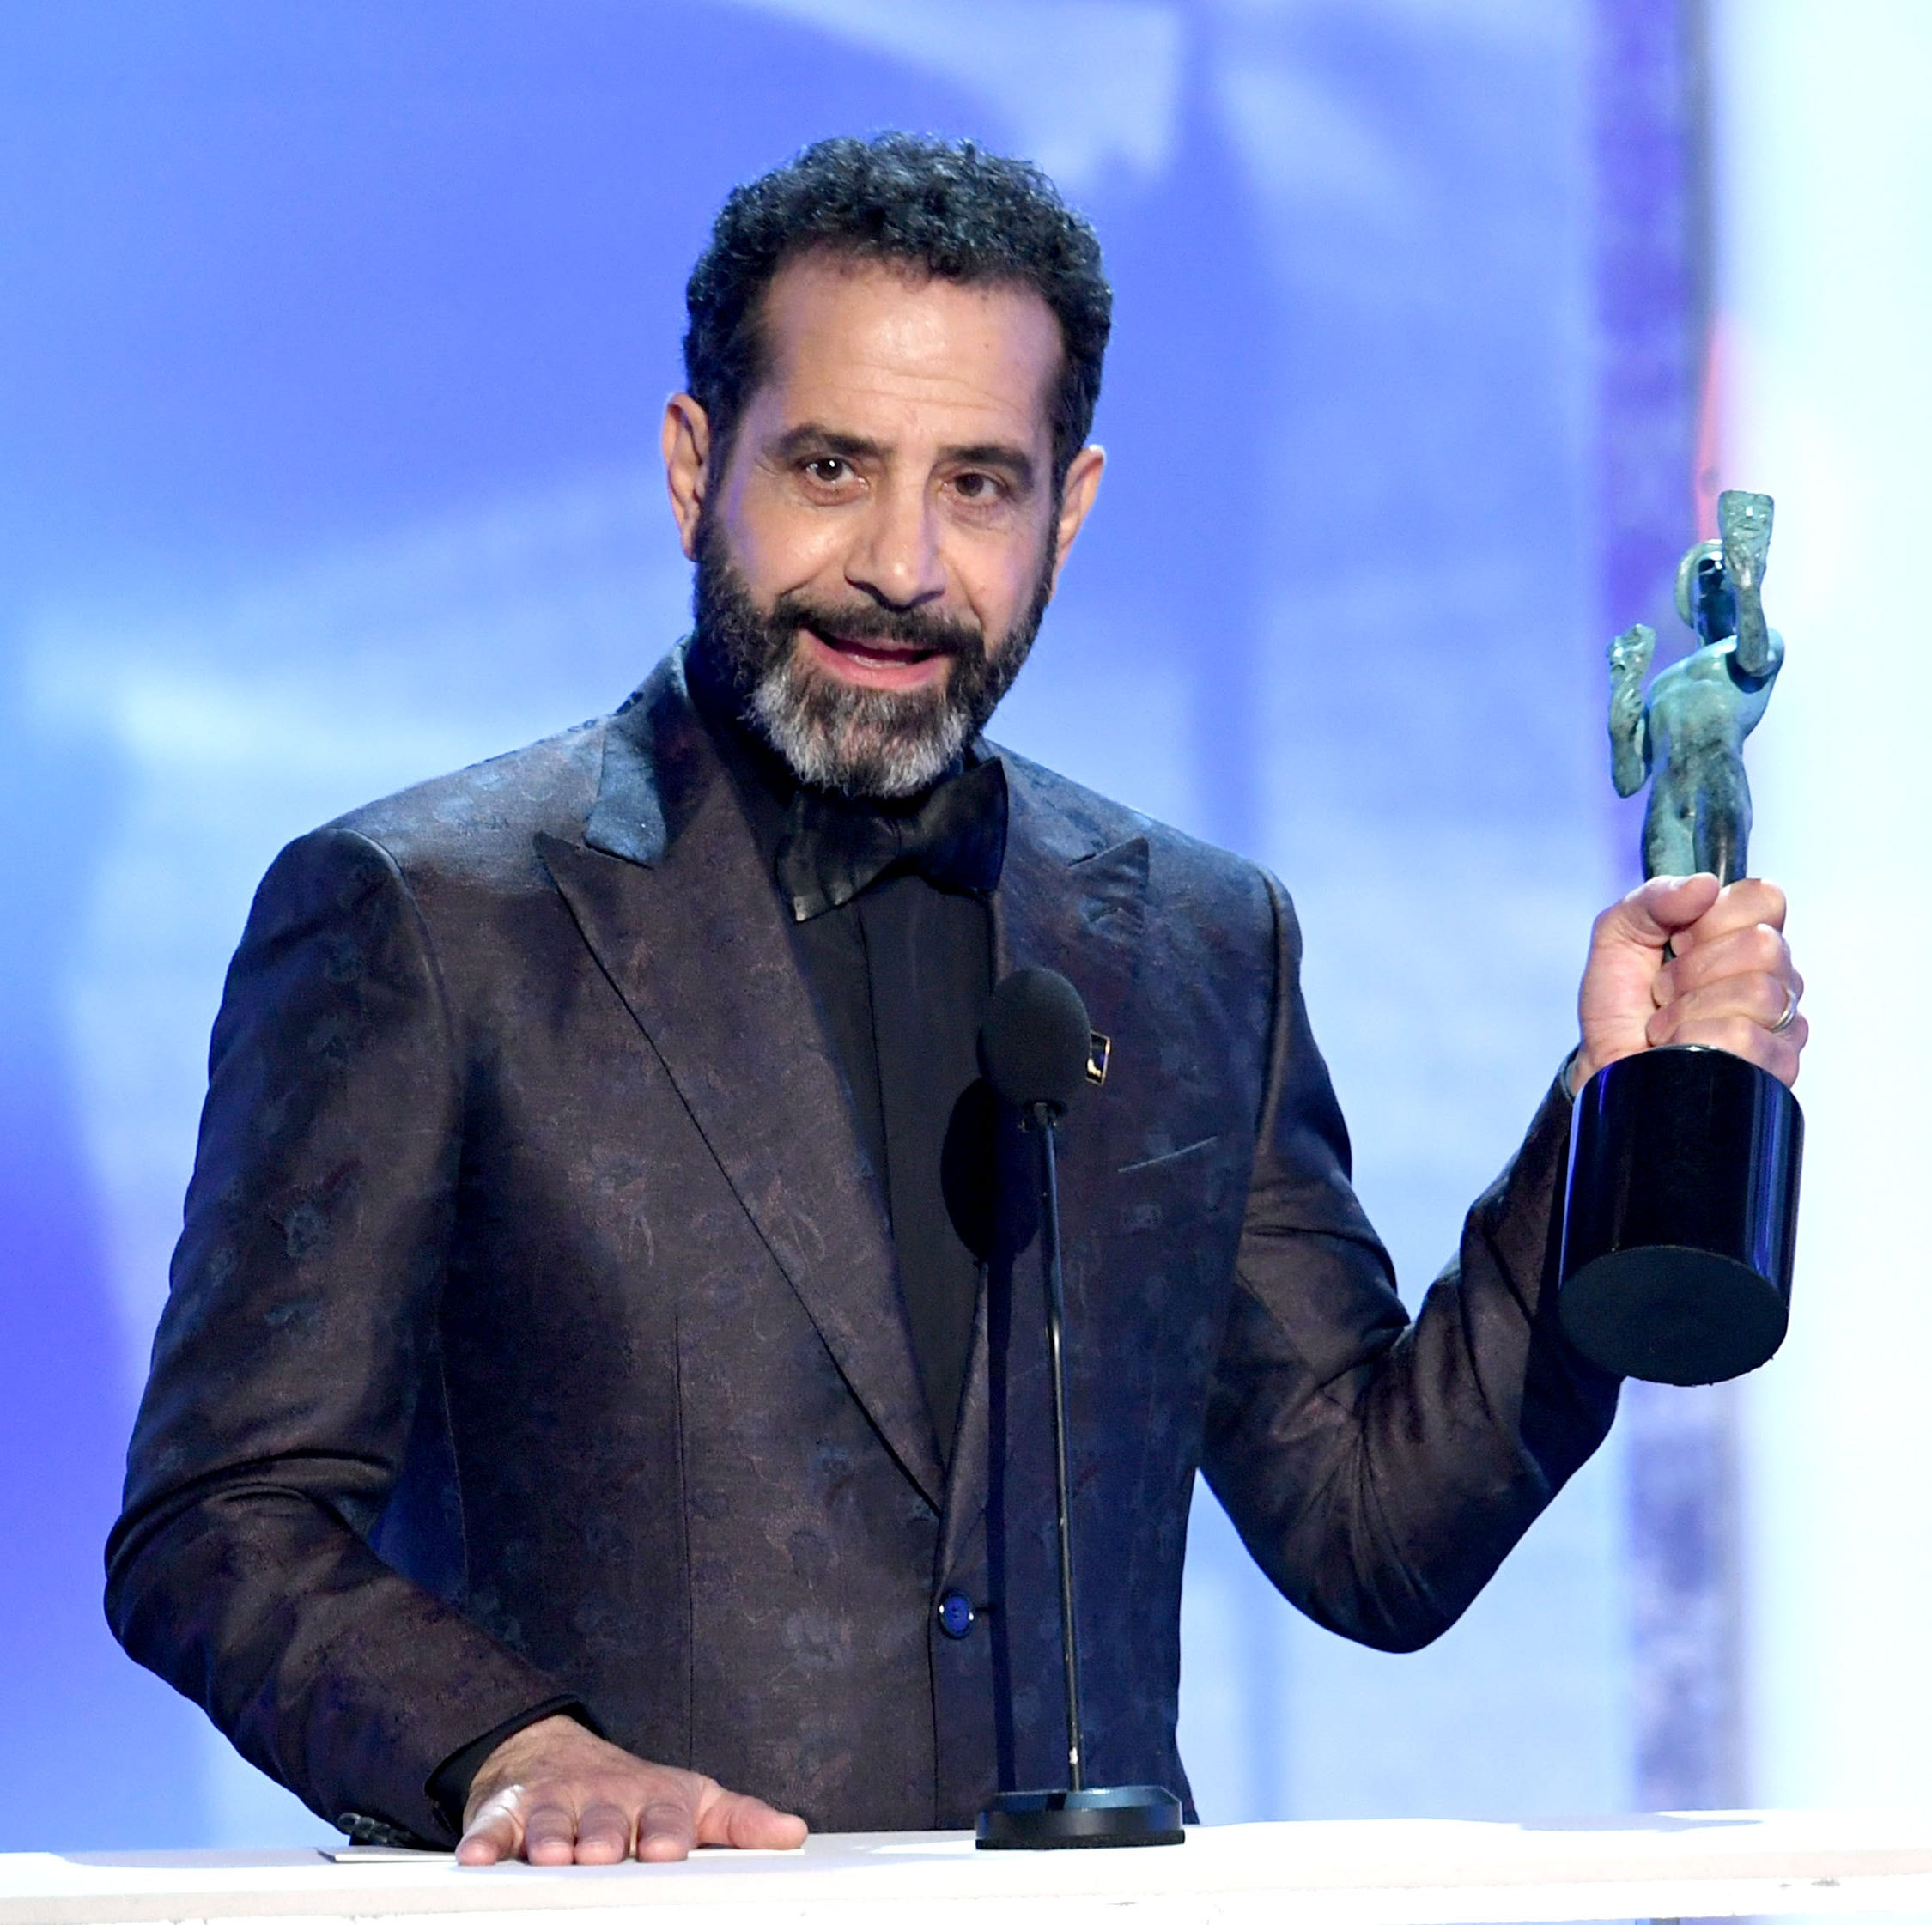 Tony Shalhoub talks about growing up in Green Bay, Lombardi-era Packers on 'WTF' podcast